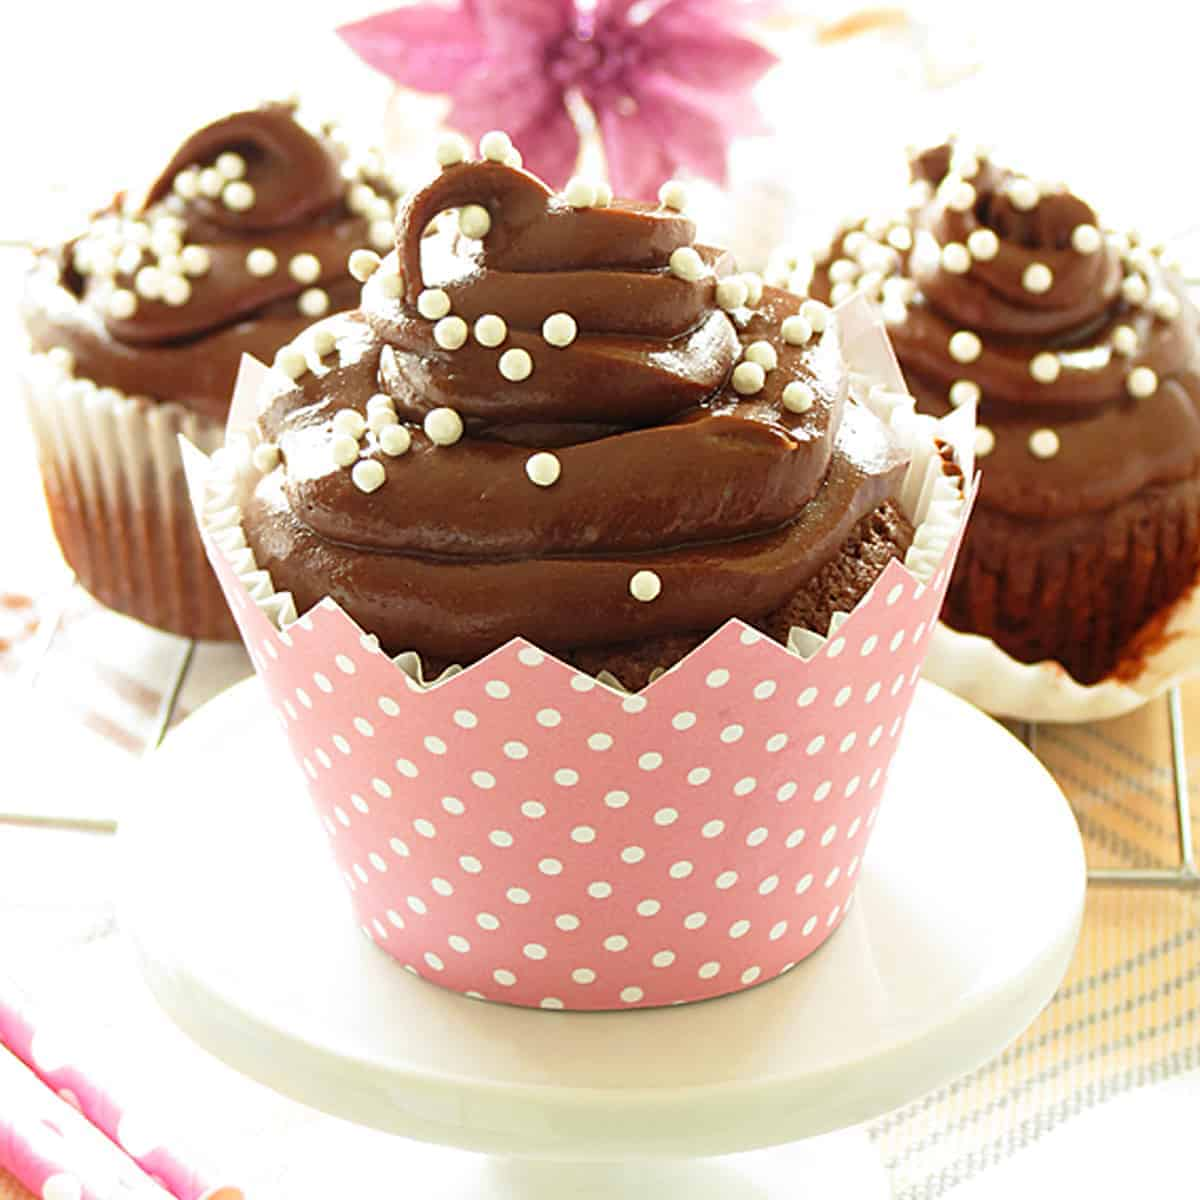 Chocolate Cupcakes with Nutella Frosting - Ilona's Passion